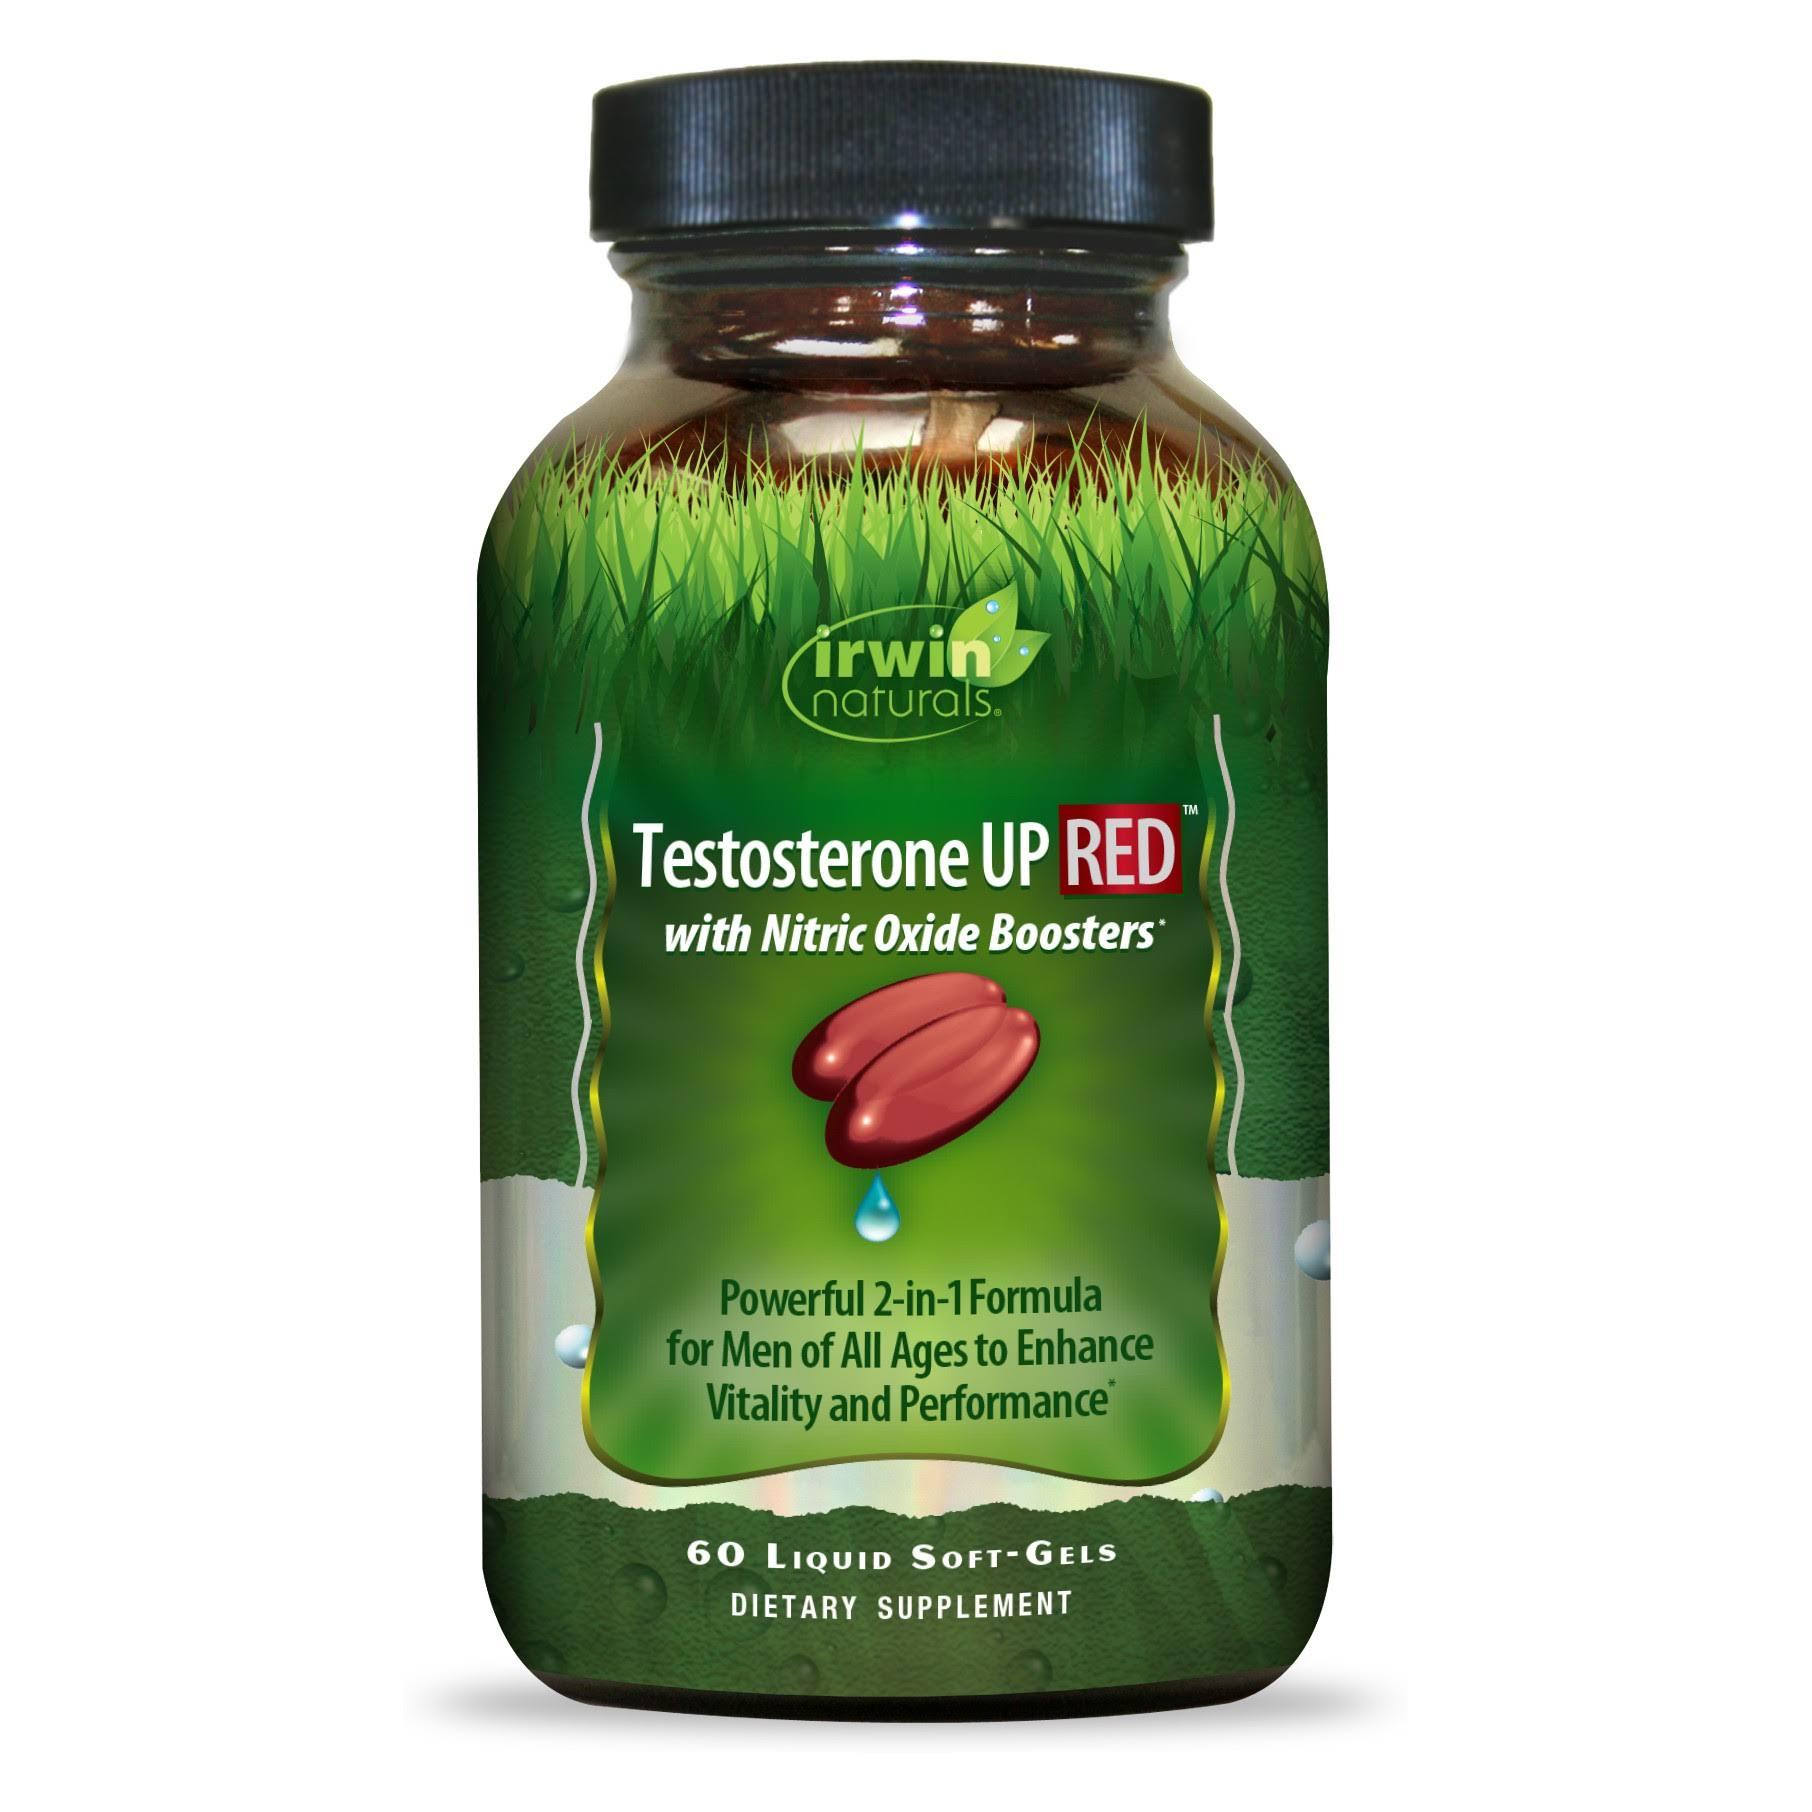 Irwin Naturals Testosterone up Red with Nitric Oxide Boosters Supplement - 60 Liquid Soft-gels